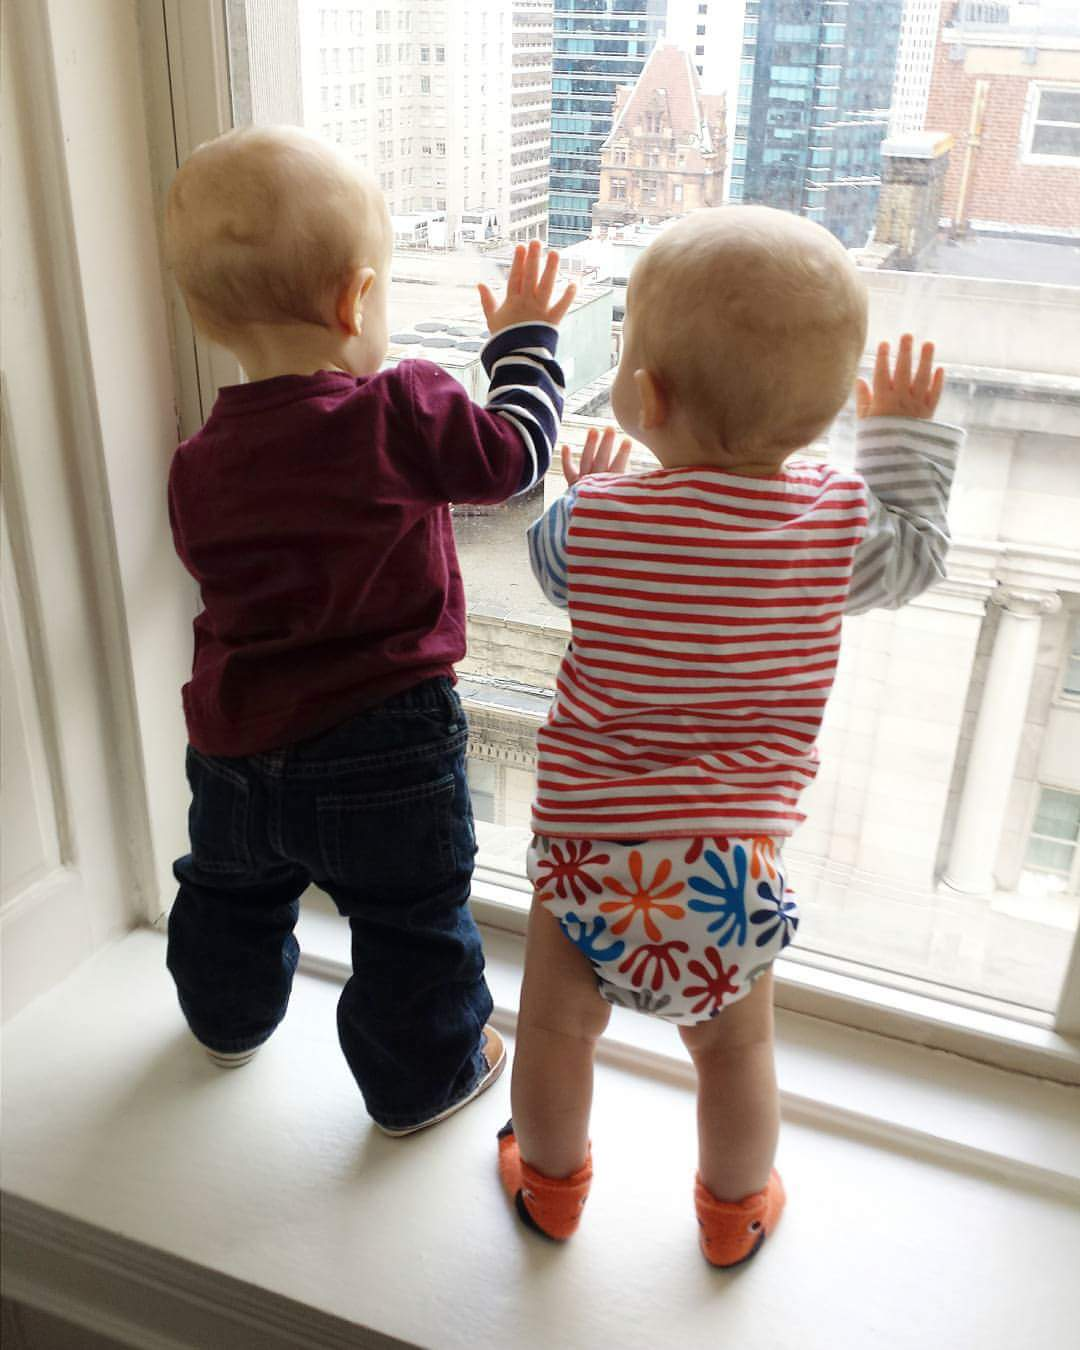 The boys looking out the window in philidelphia